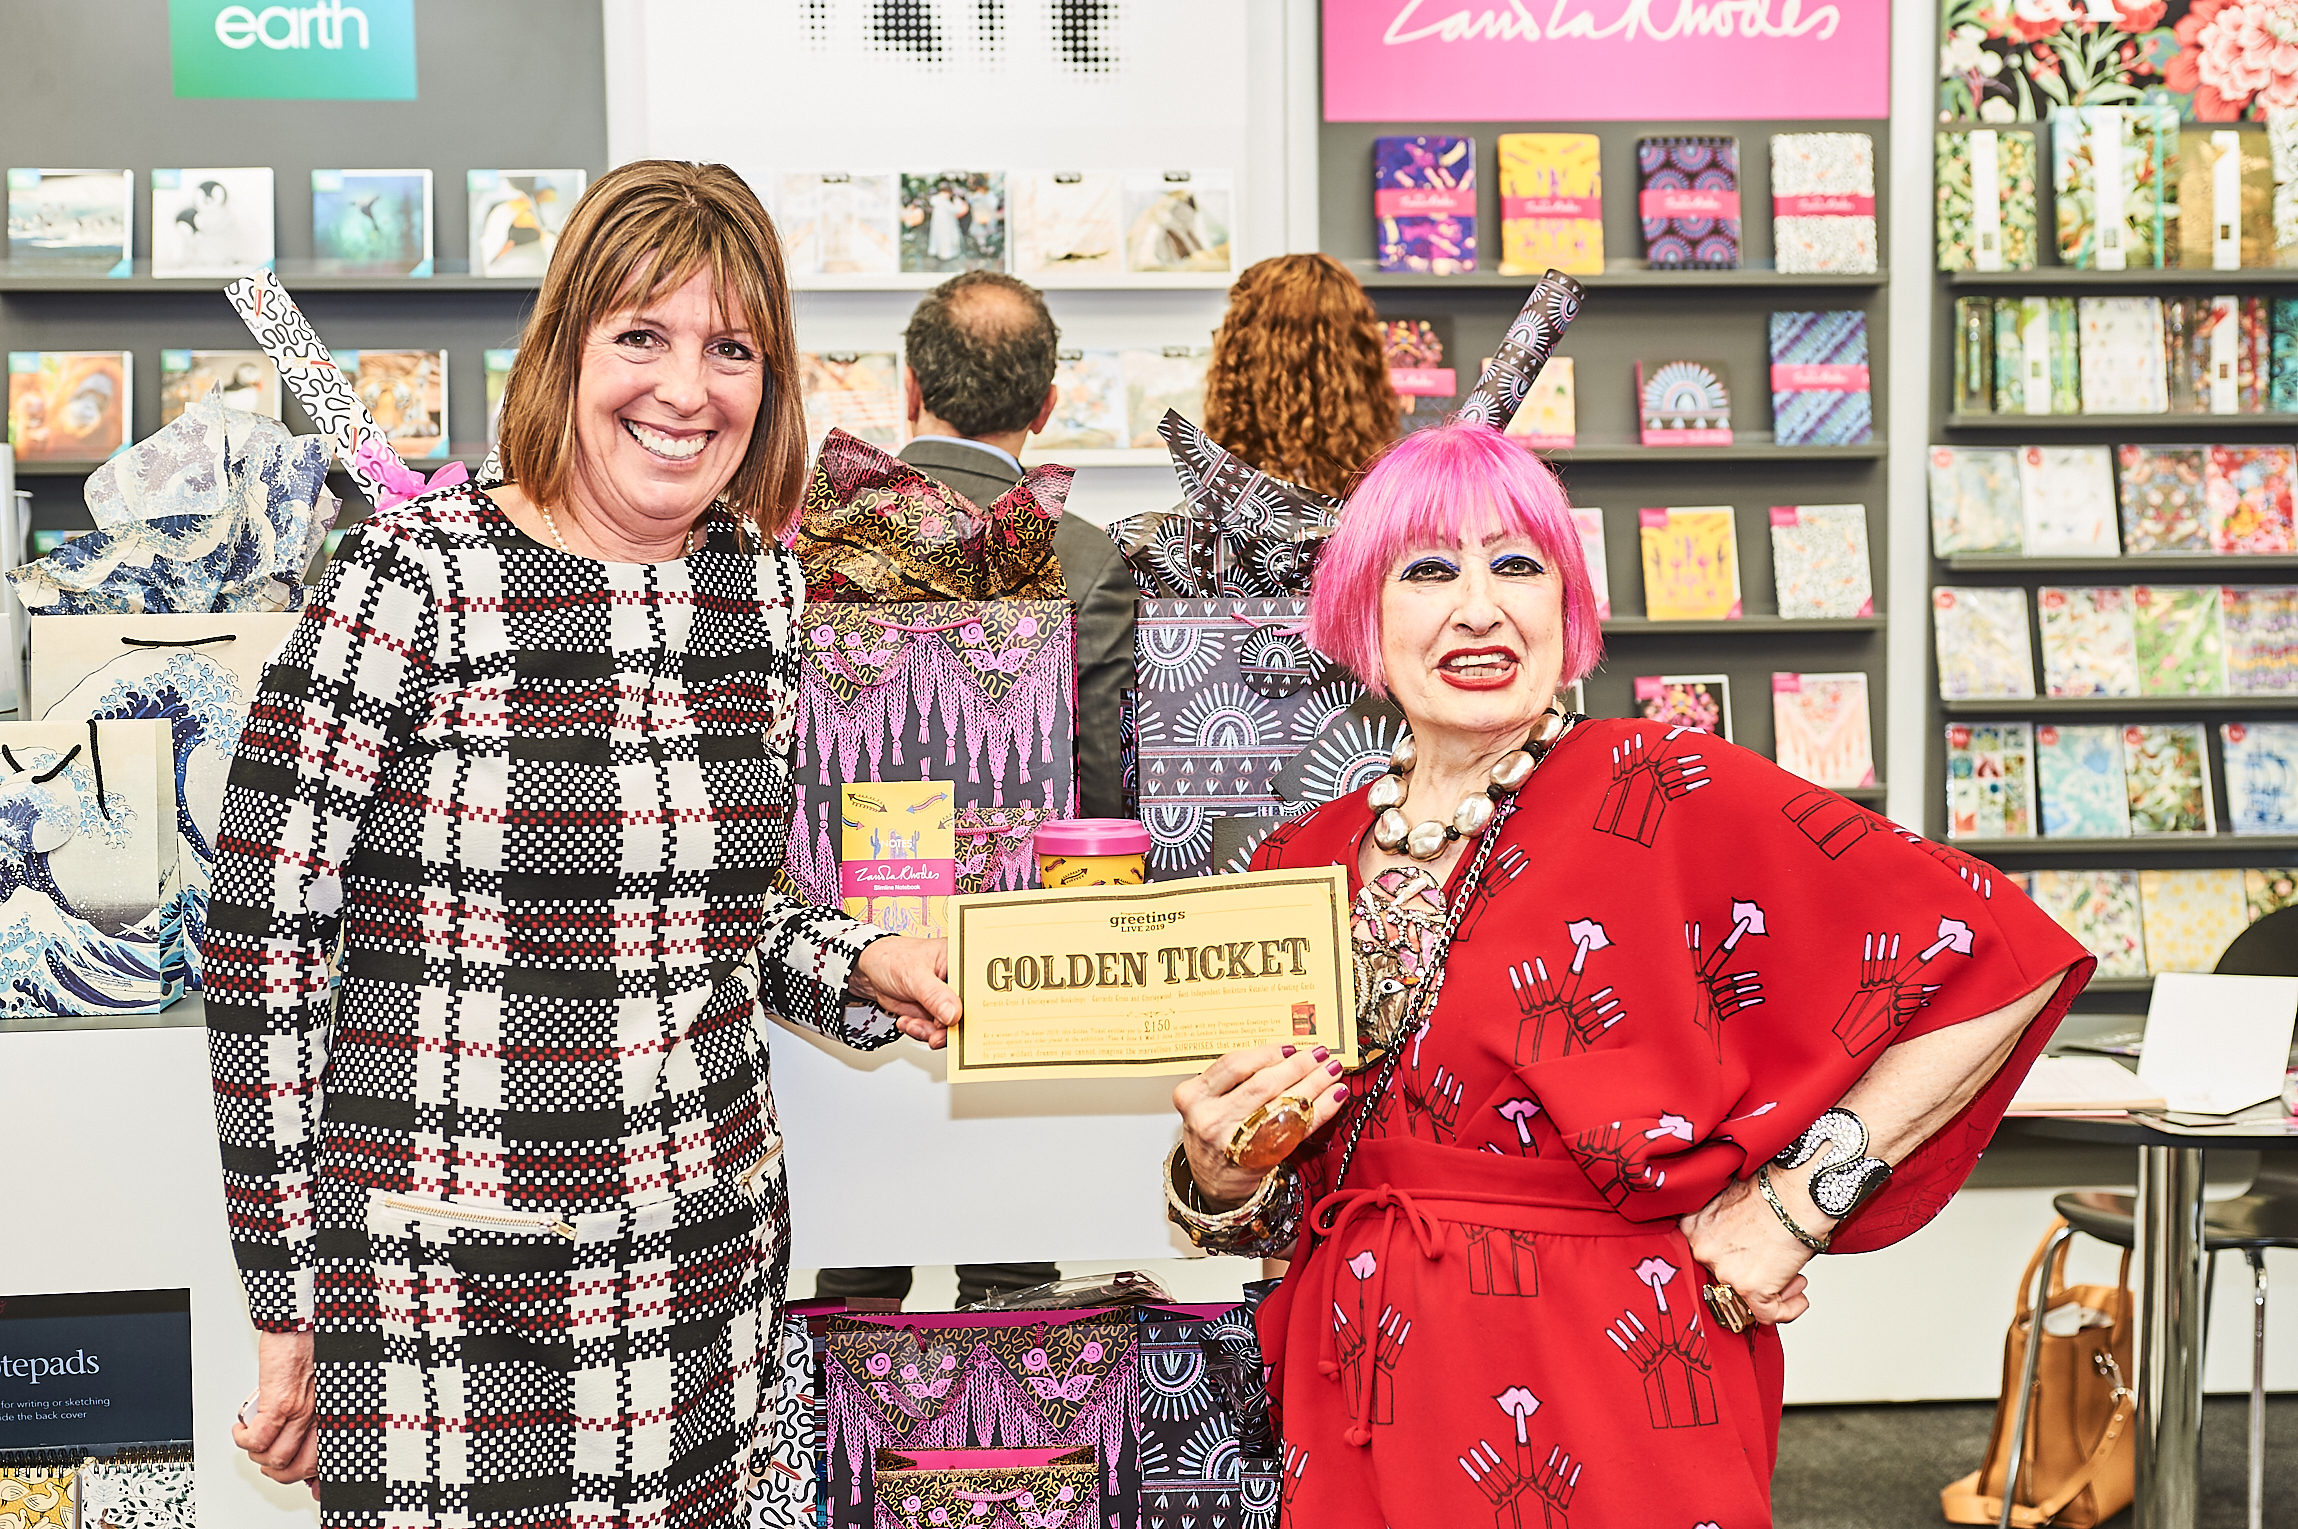 Above: Sheryl Shurville of Chiltern Bookshops (left) was delighted to spend her Golden Ticket on the M&G stand on the Zandra Rhodes collection.